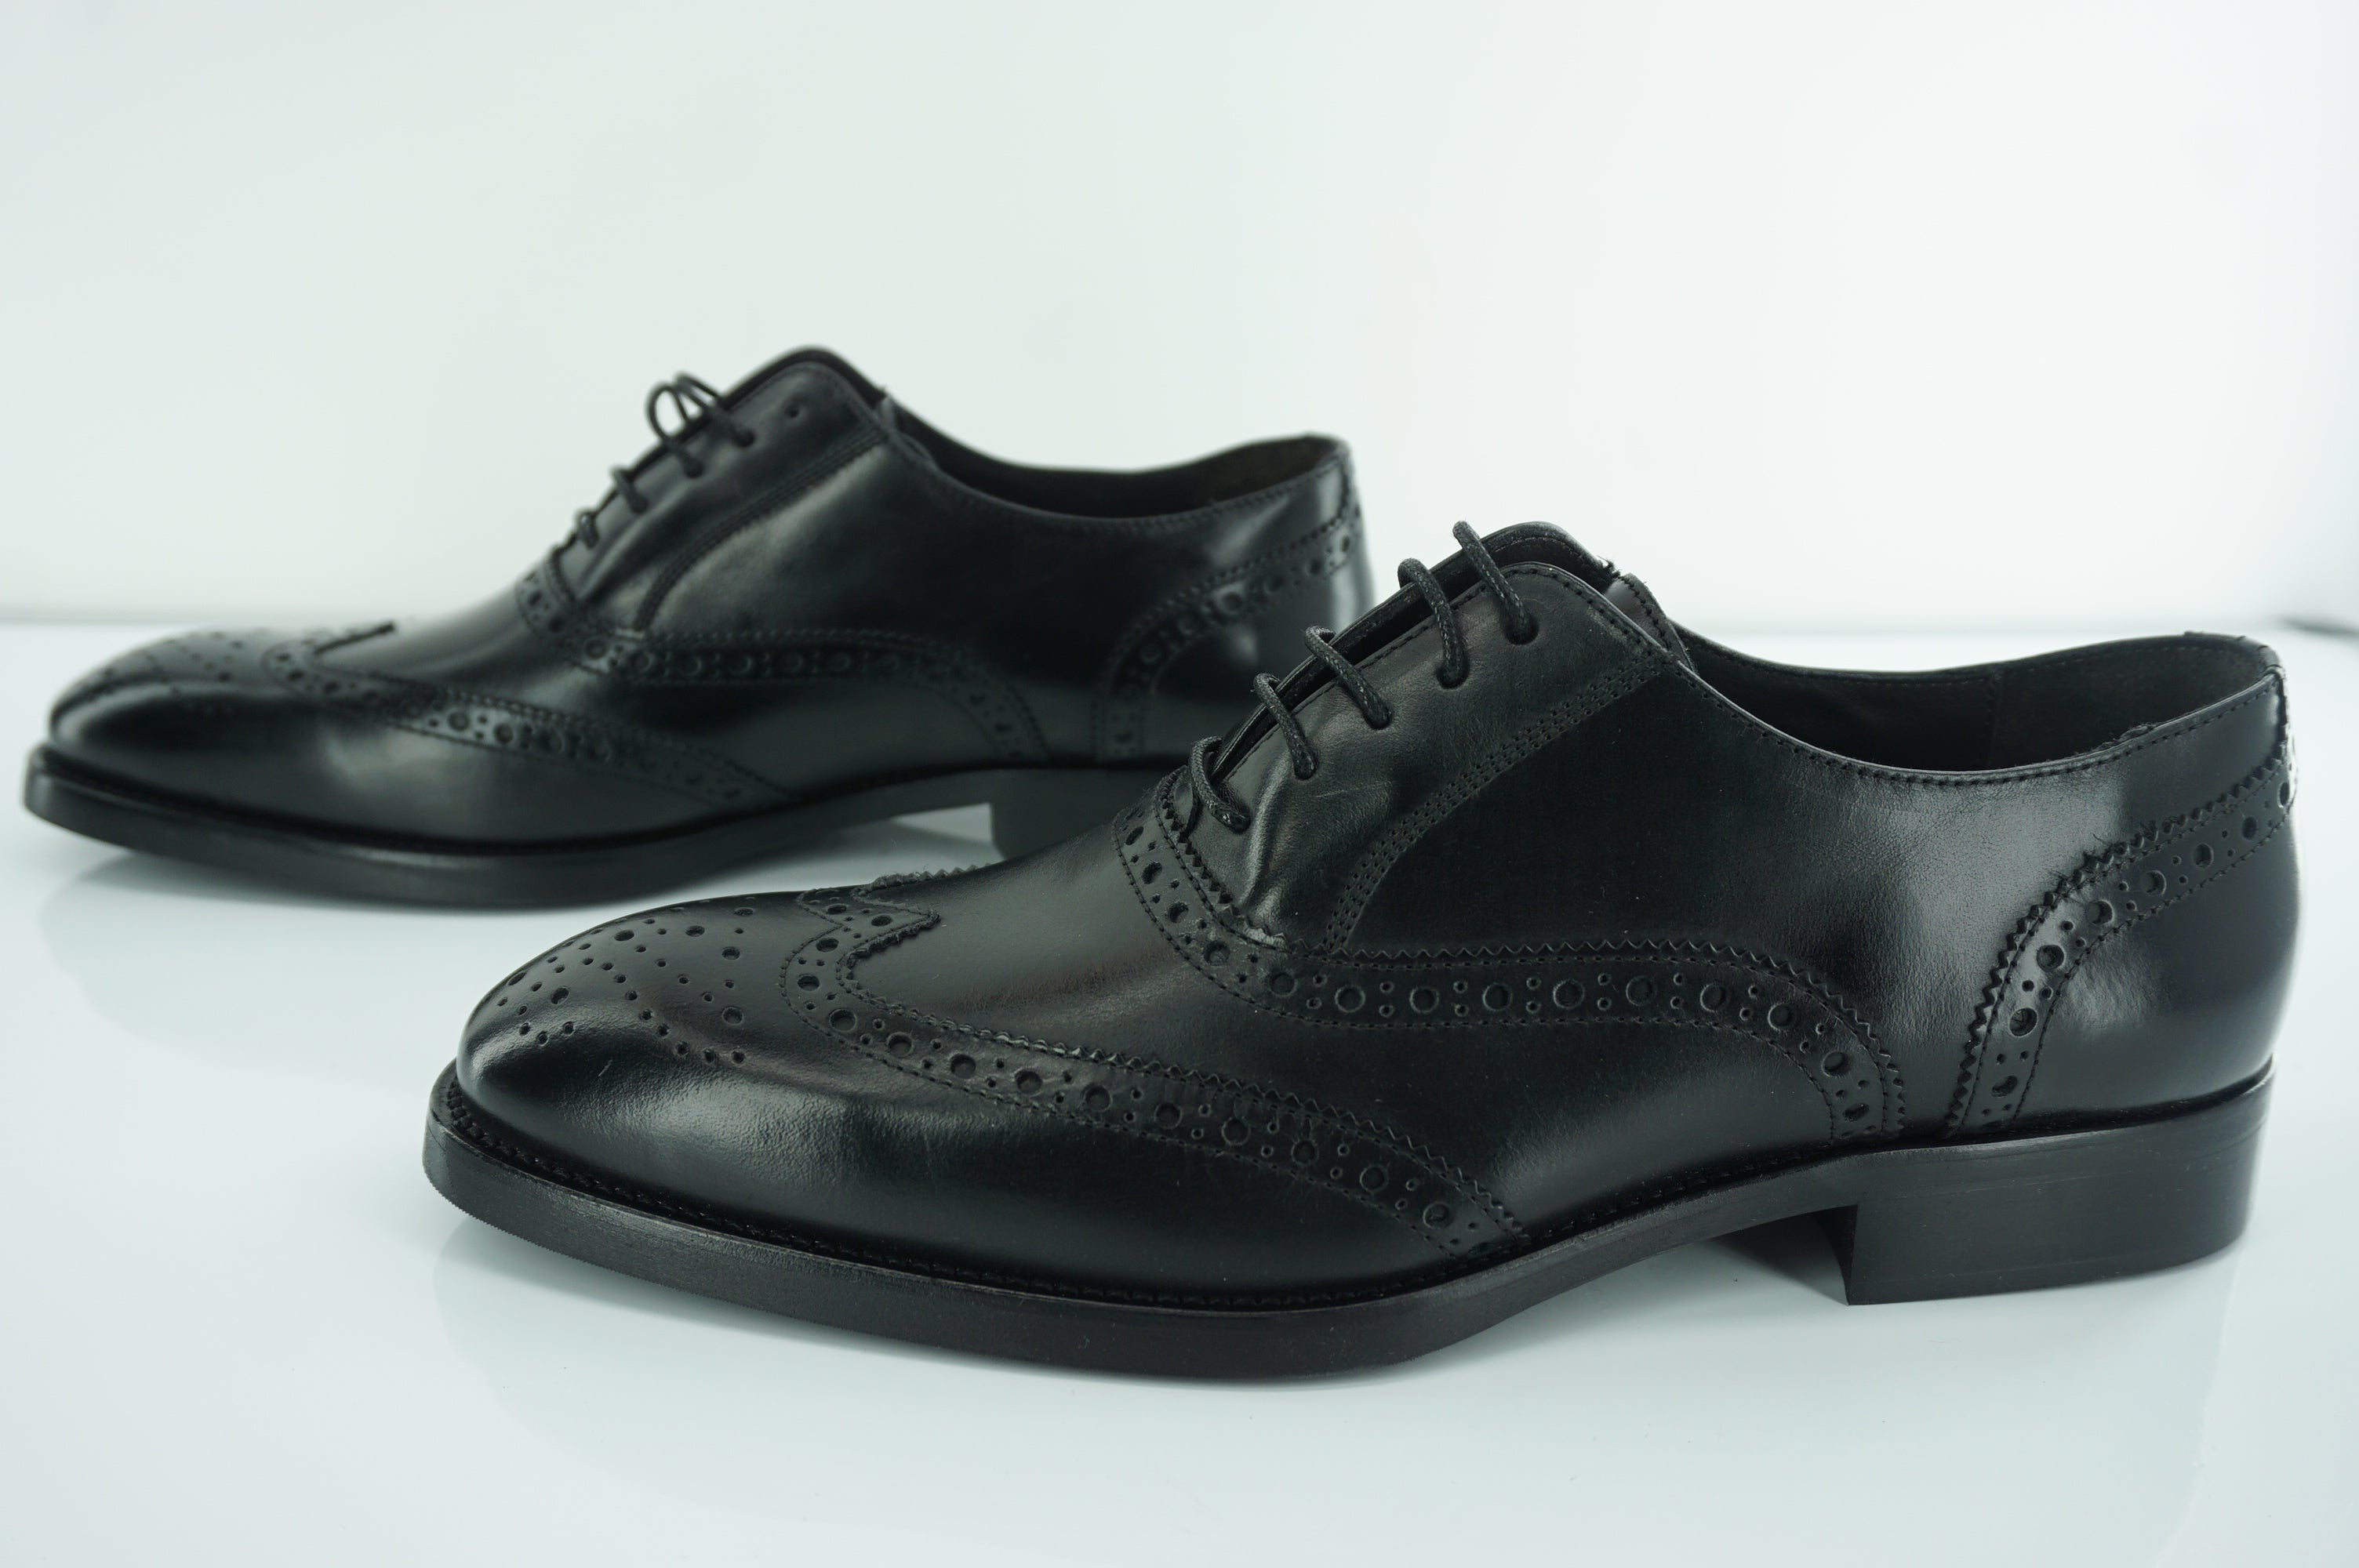 To Boot New York Black Leather Bello Wingtip Brogue Oxfords size 9.5 NIB $425